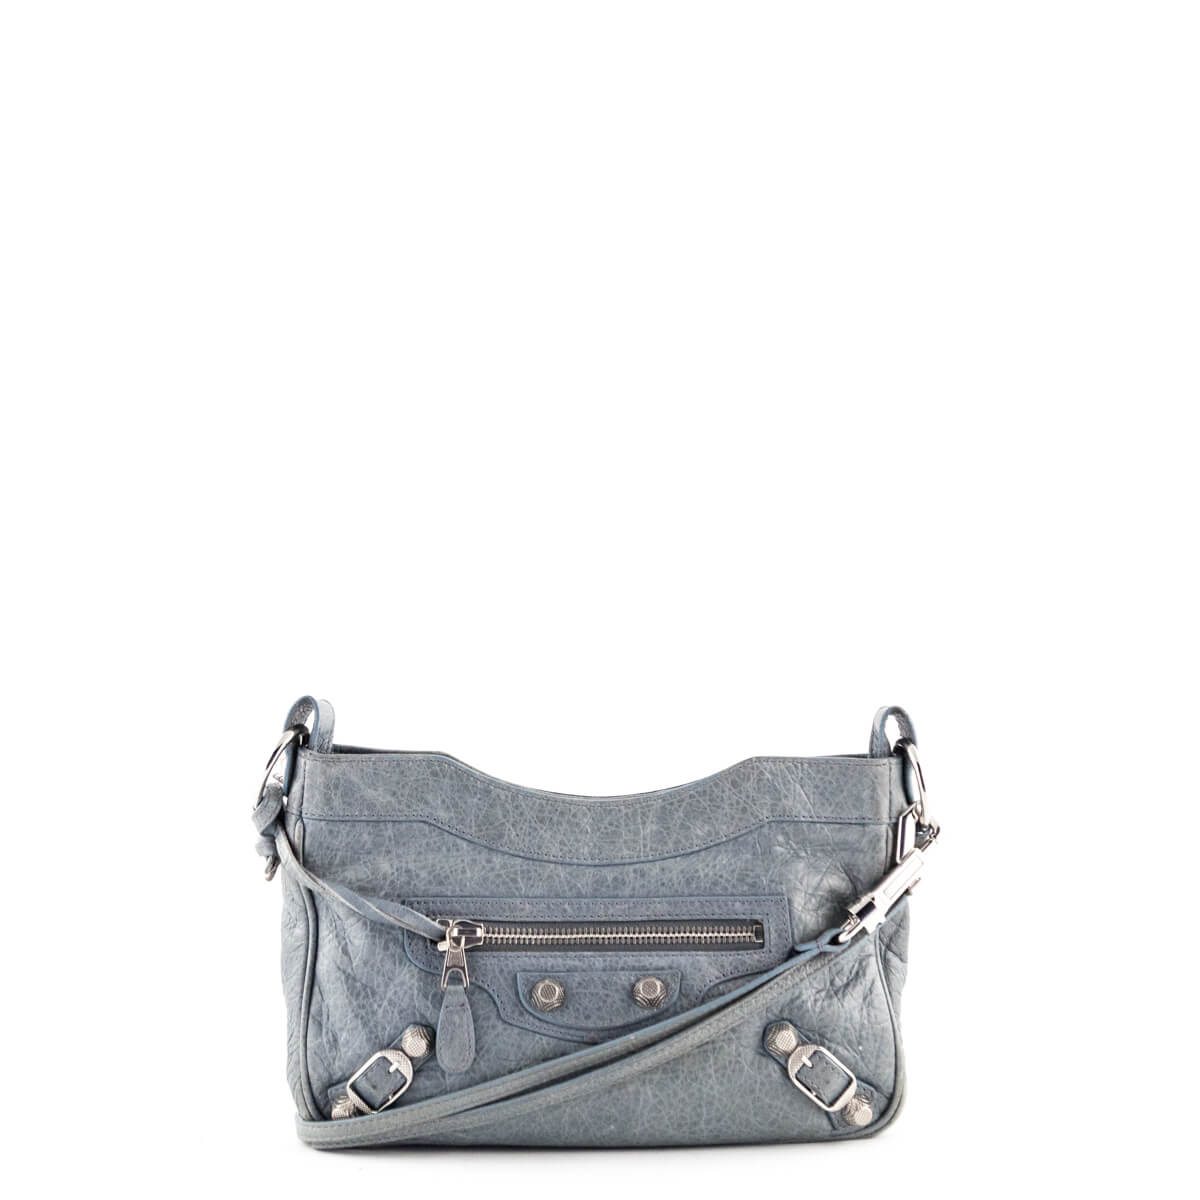 60855d0a9 Balenciaga Tempete Lambskin Giant 12 Silver Hip Bag - LOVE that BAG -  Preowned Authentic Designer ...